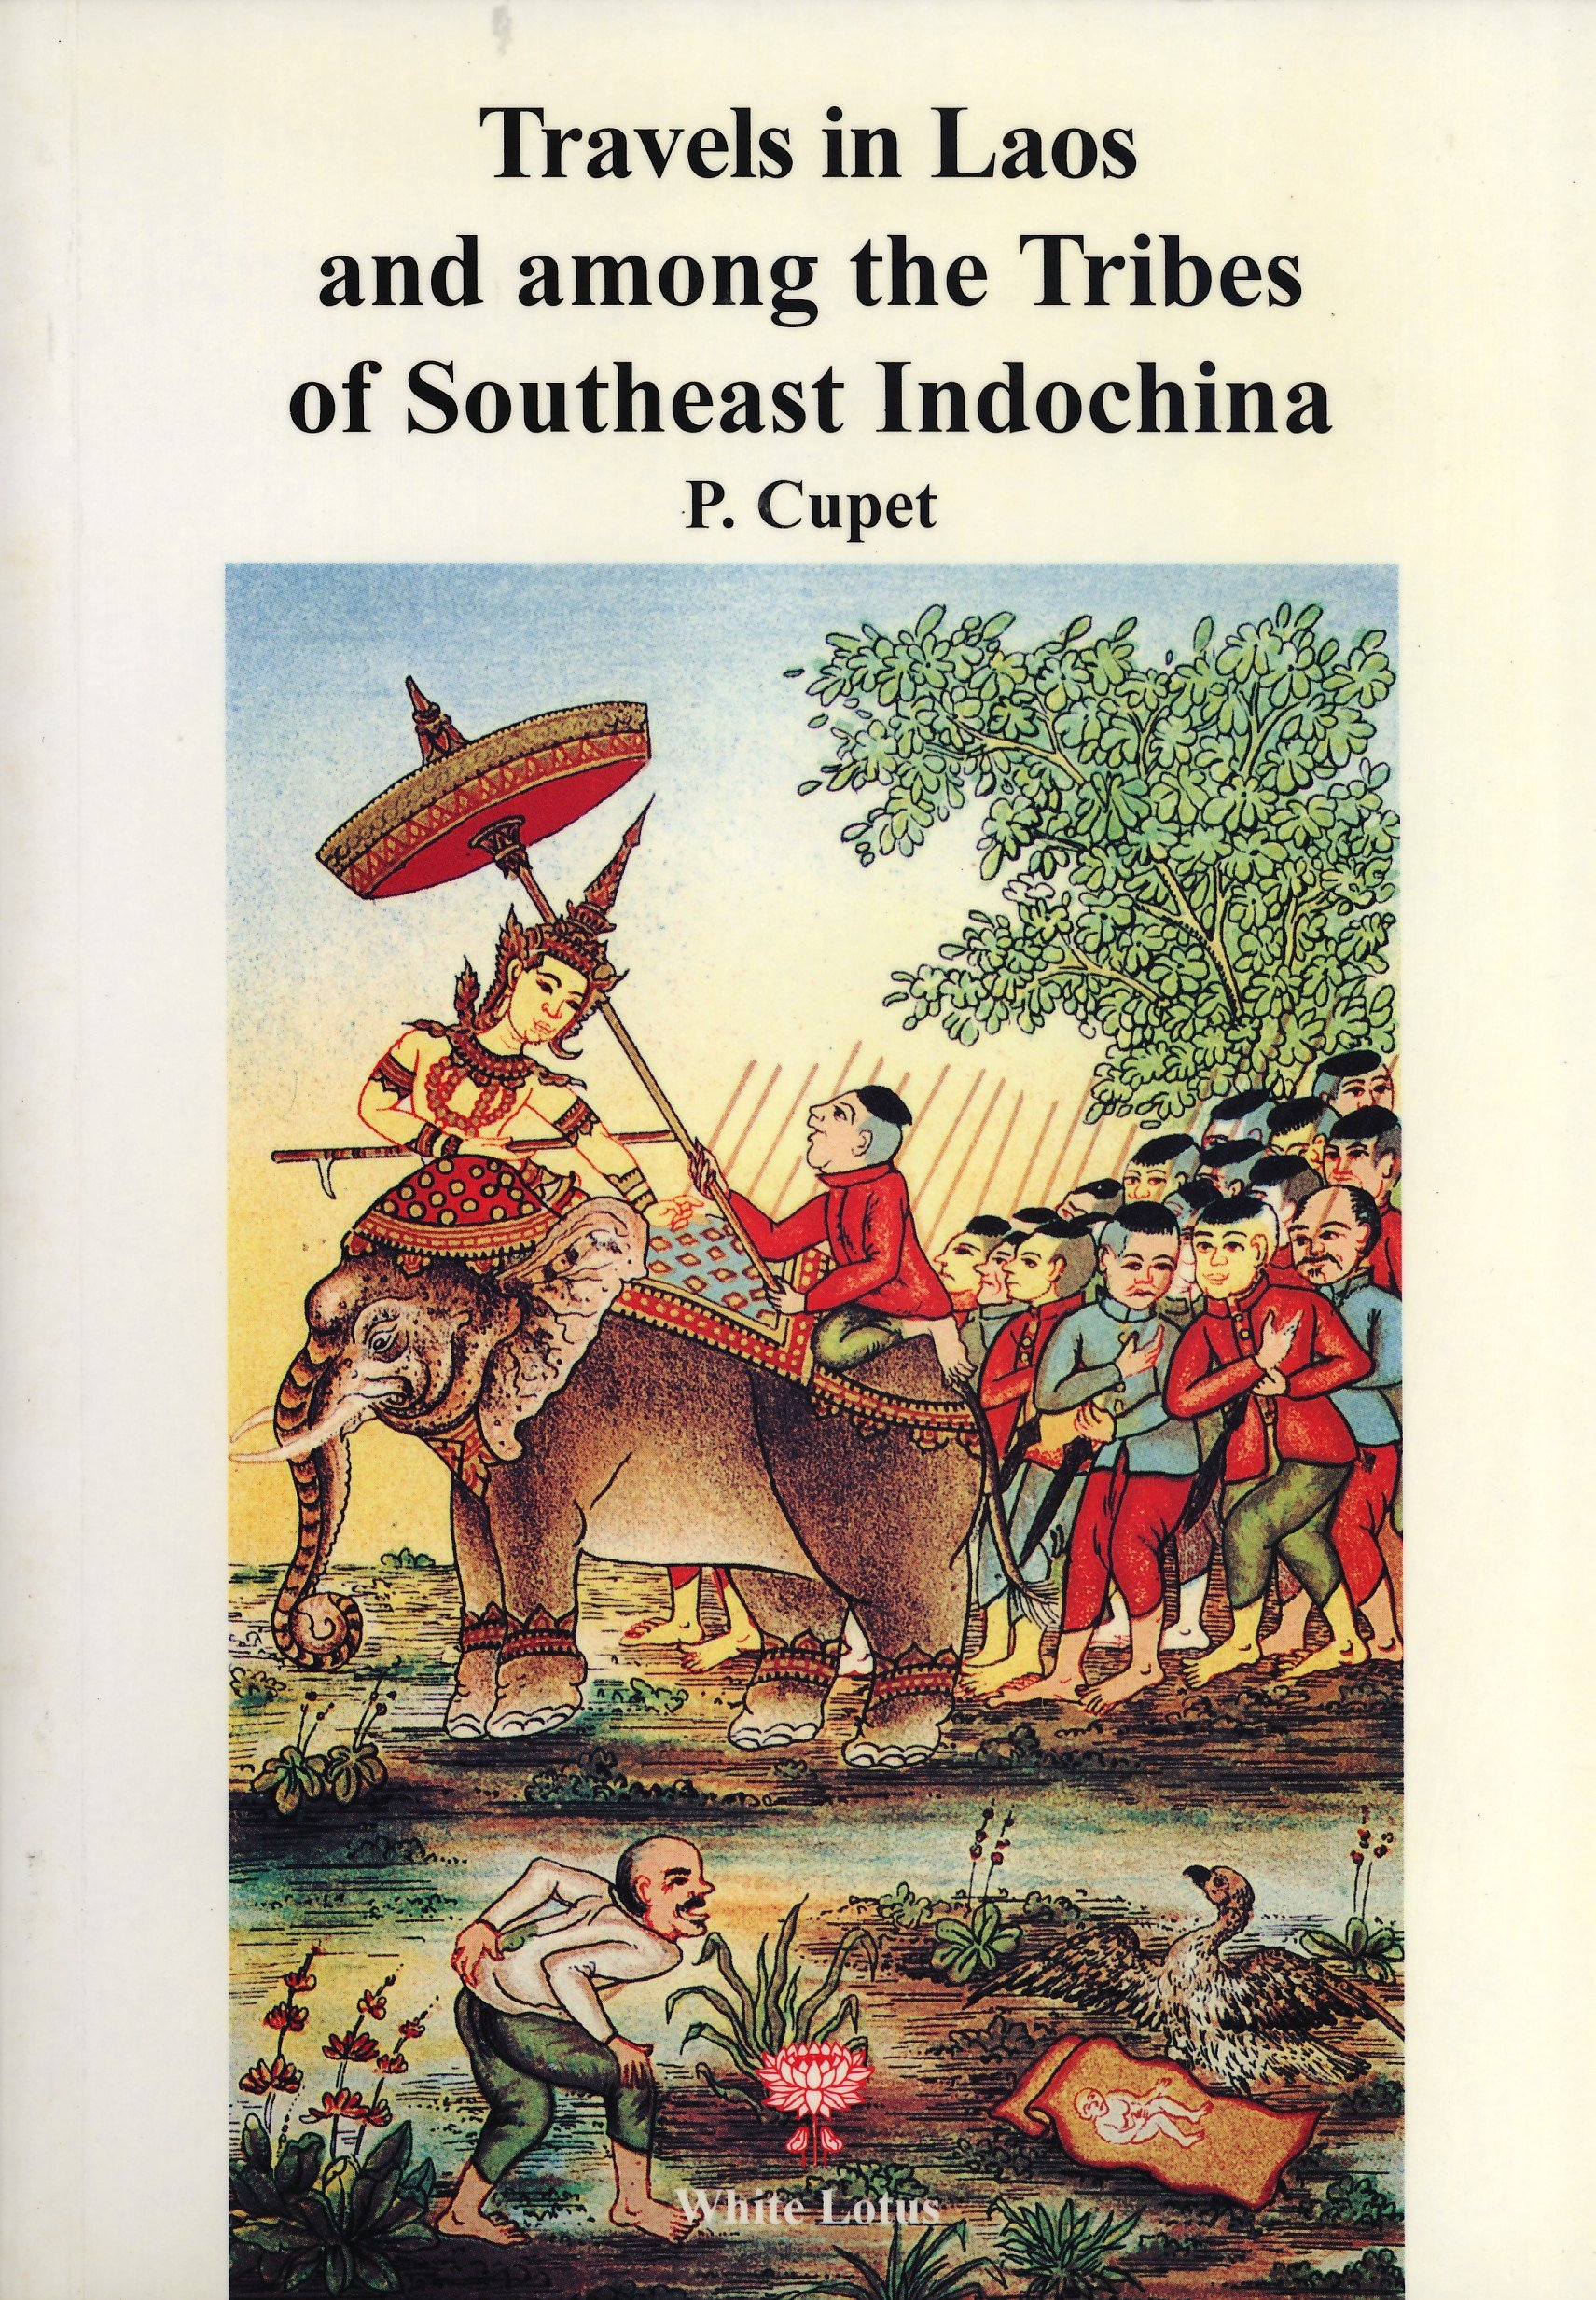 Download Travels in Laos and among the Tribes of Southeast  Indochina , the Pavie Mission Indochina Papers 1879-1895 (volume 6) pdf